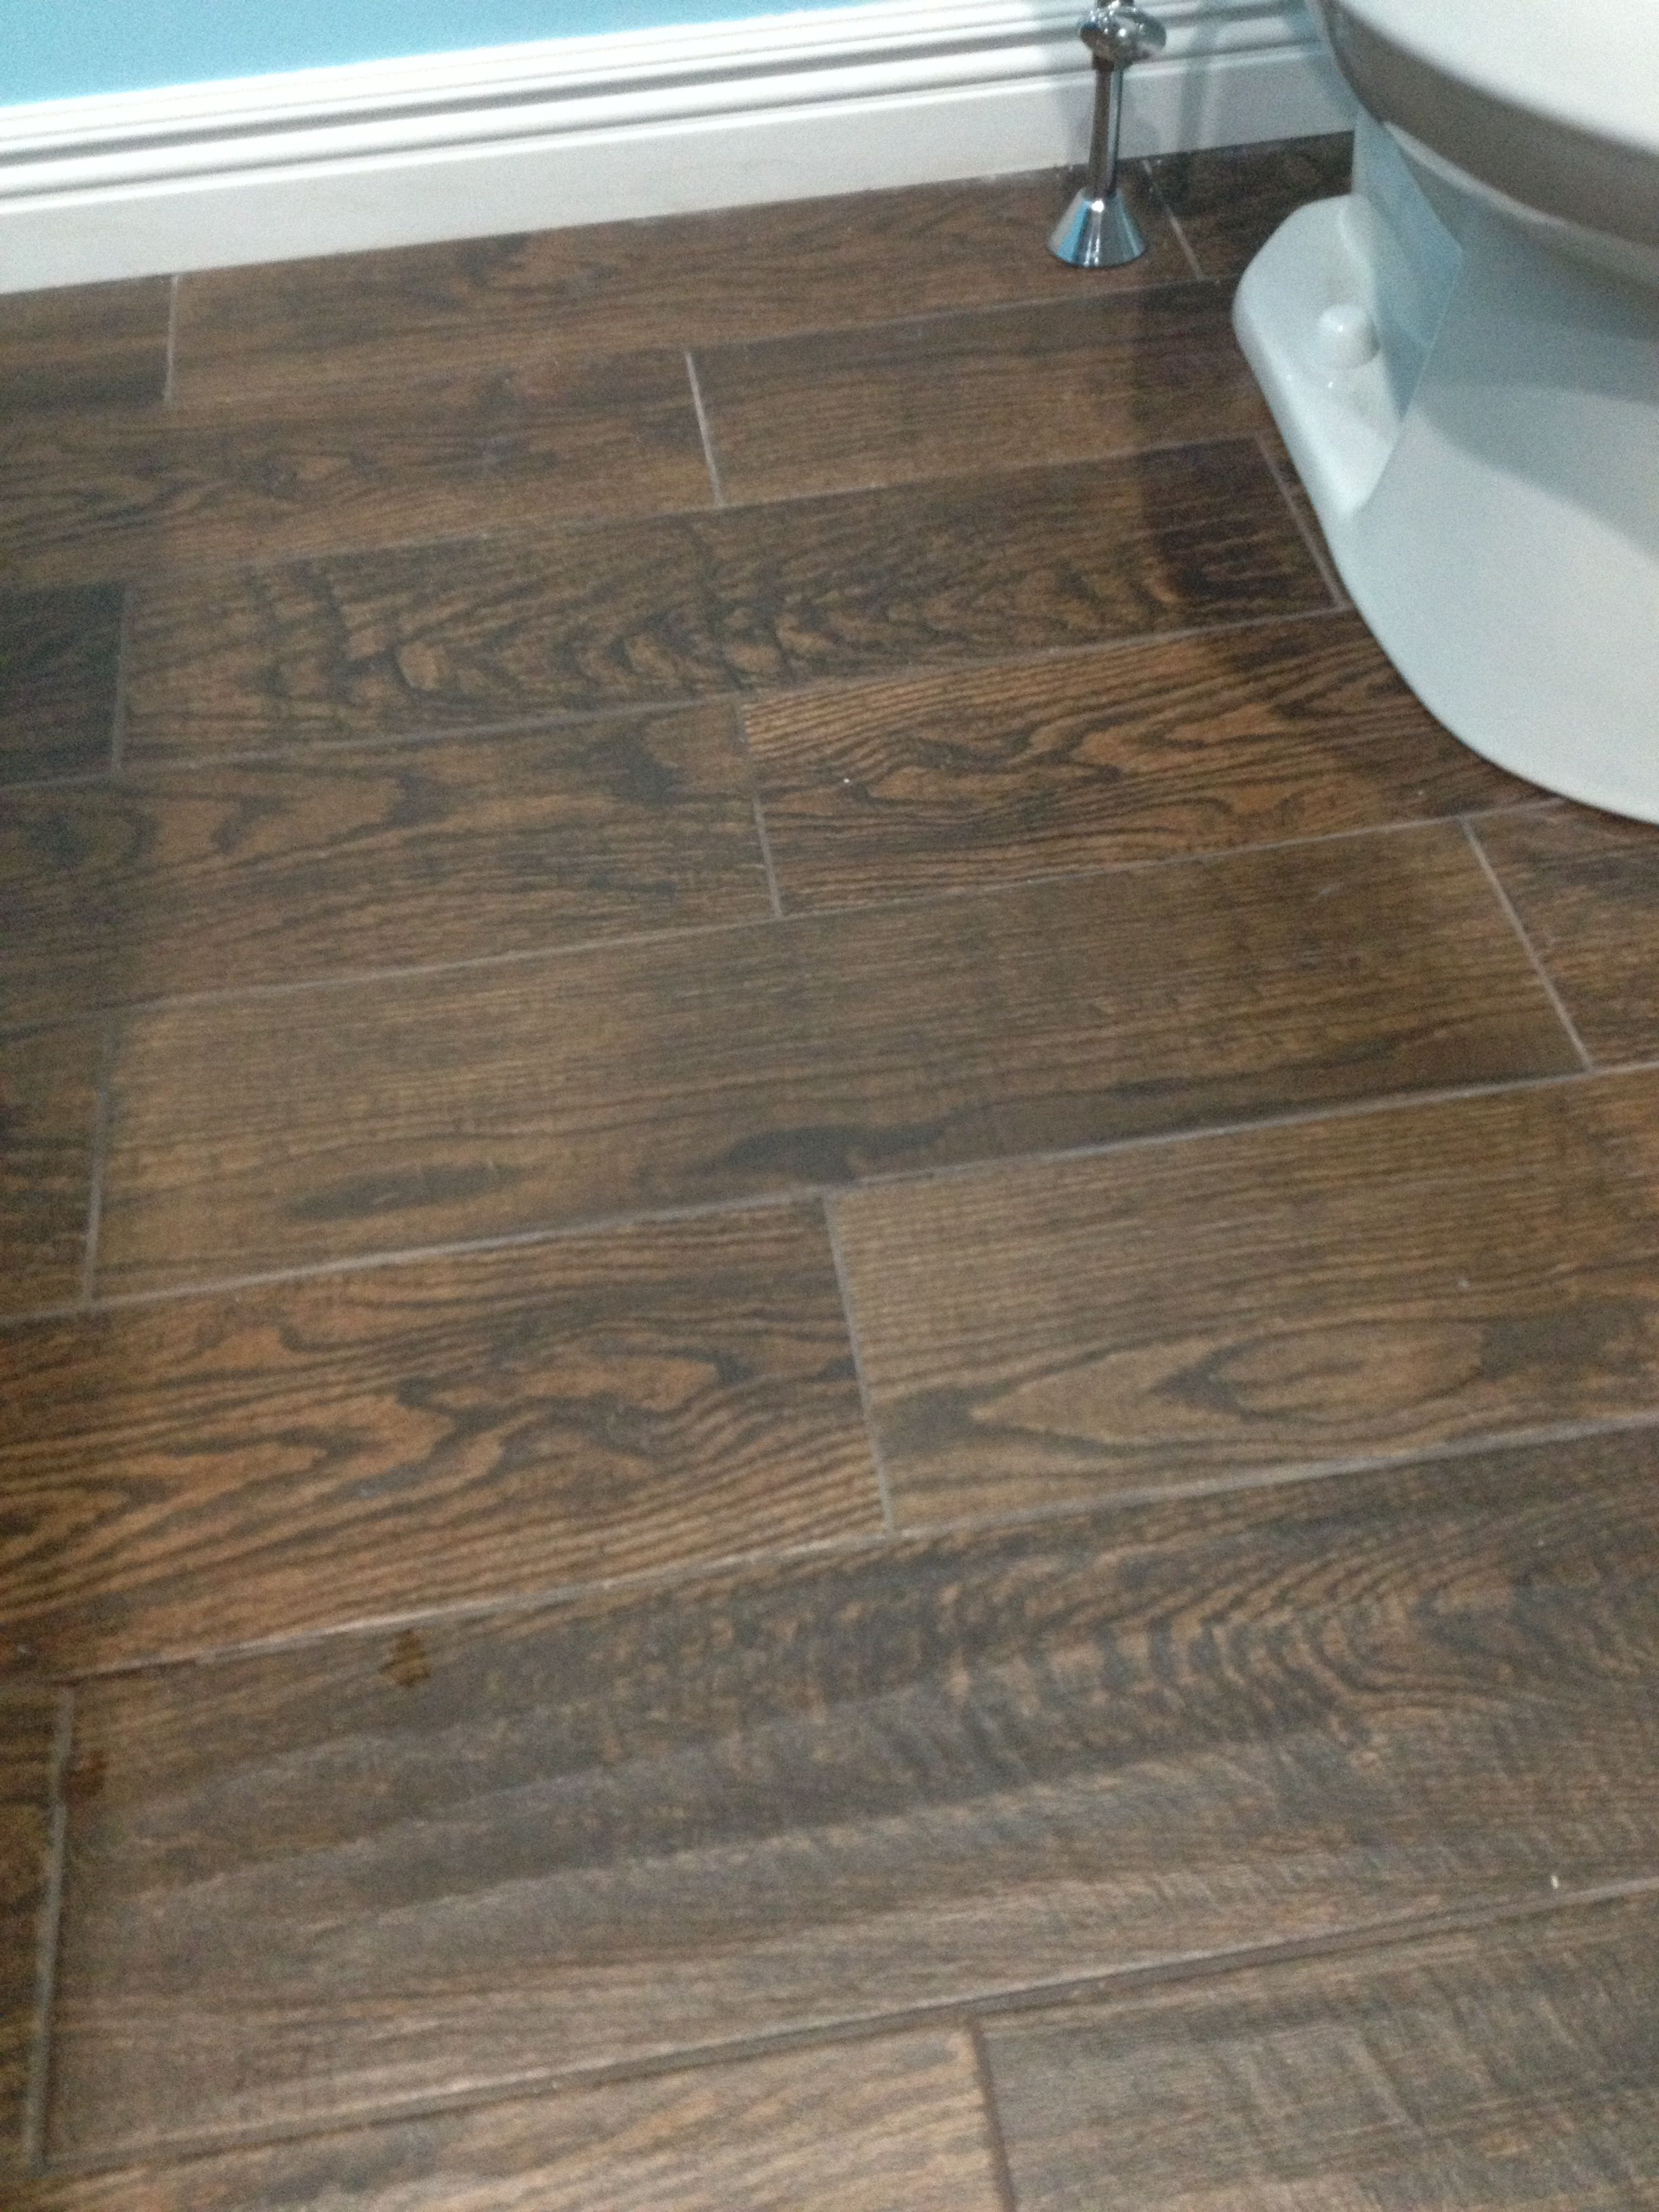 Porcelain wood look tile in upstairs bathroom. Home Depot | House ...